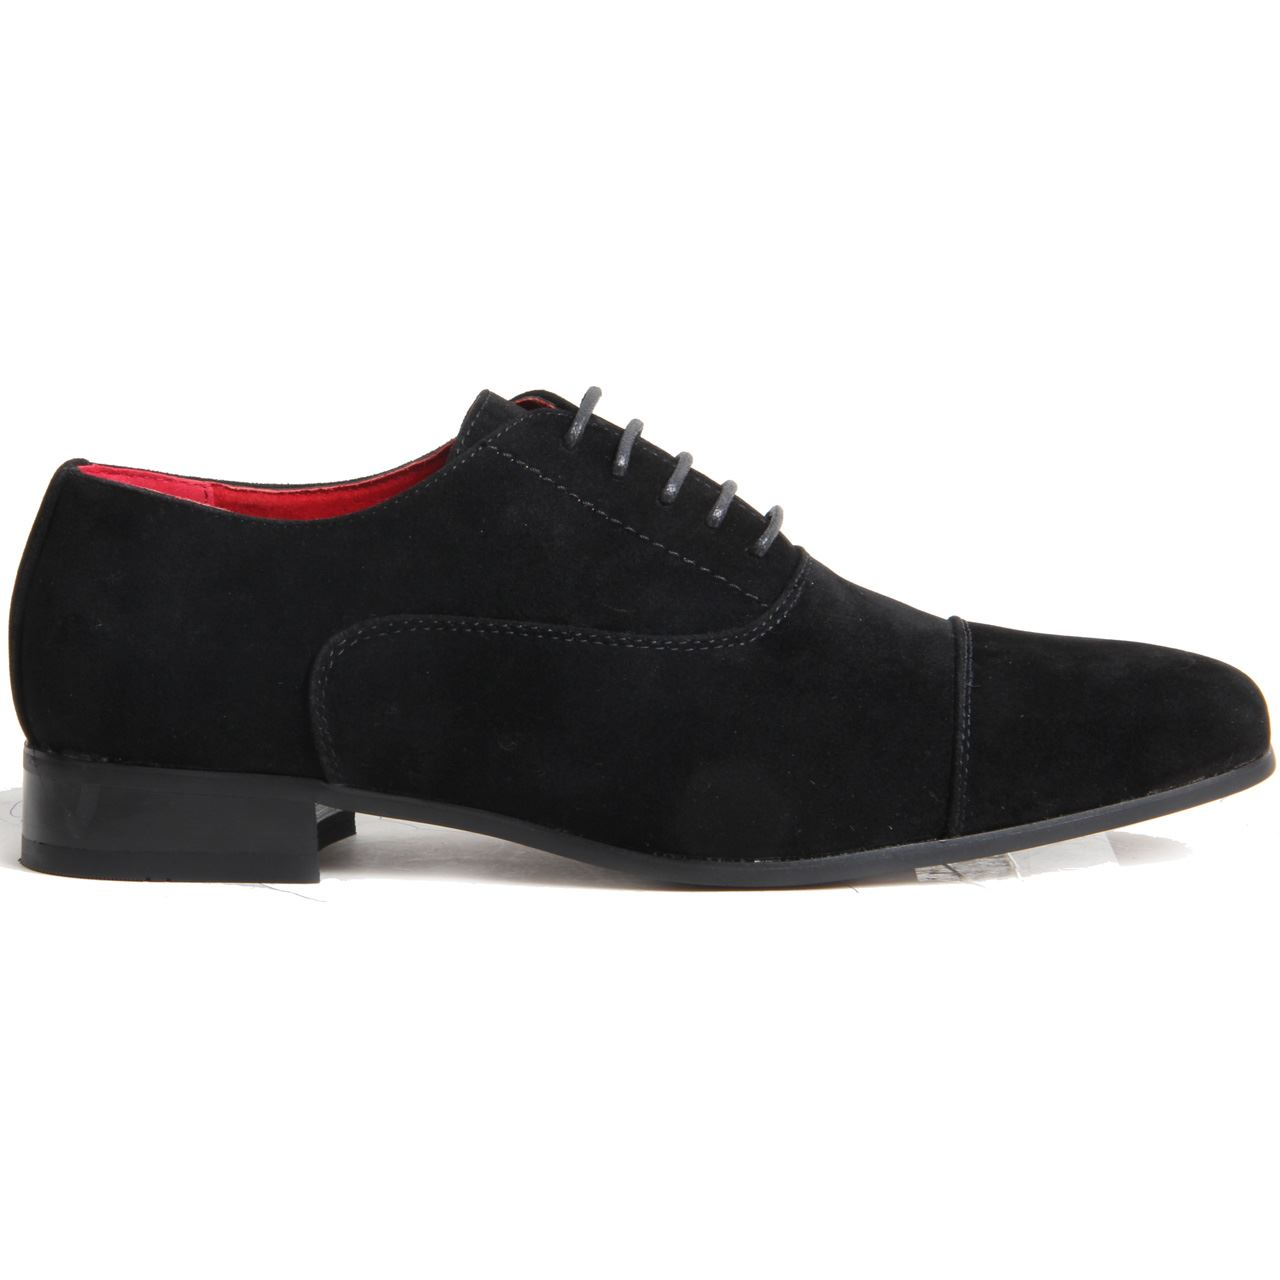 Mens Black And White Spectator Shoes